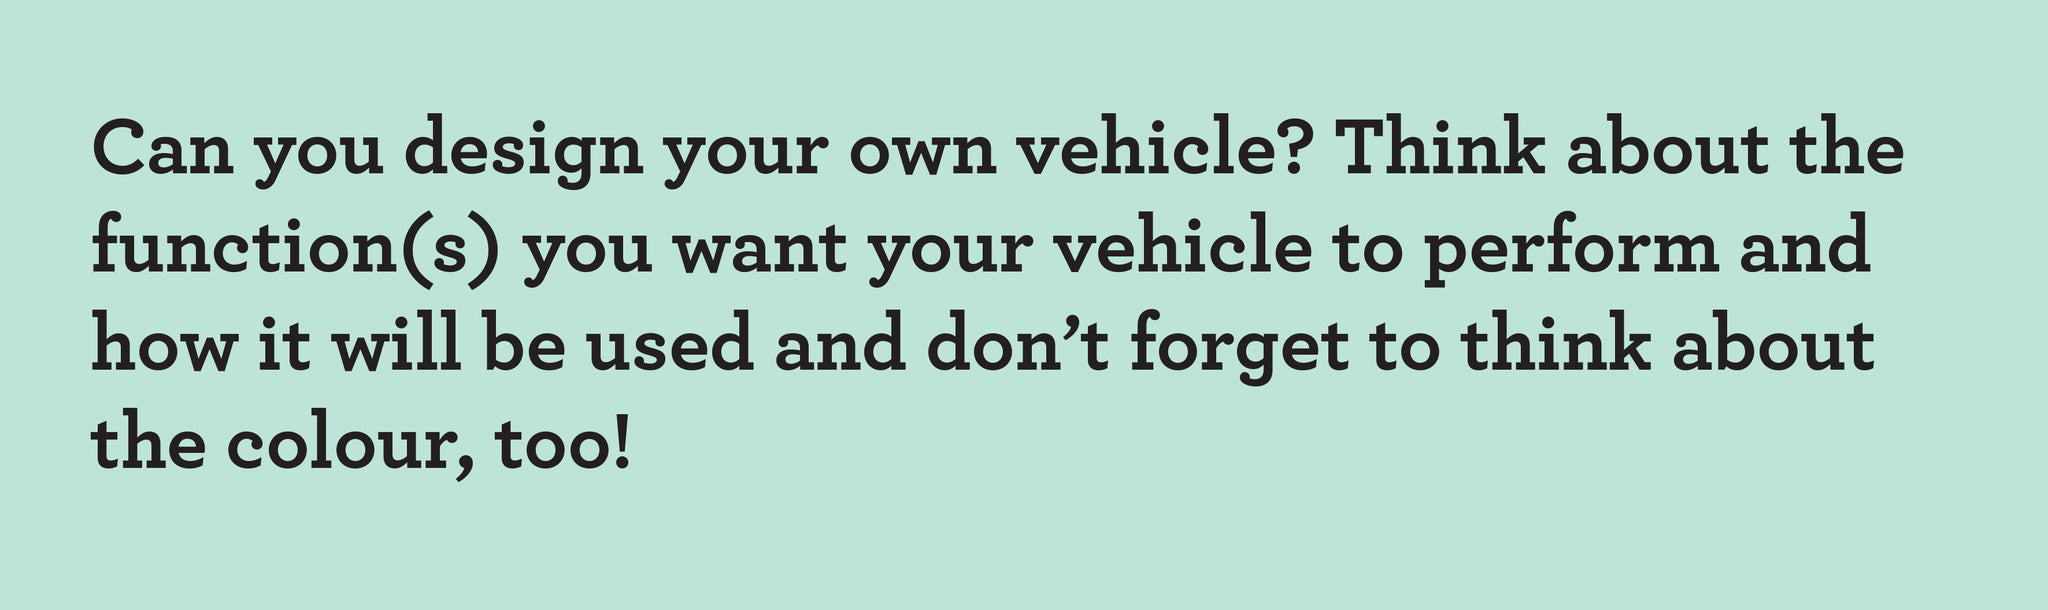 design your vehicle for kids